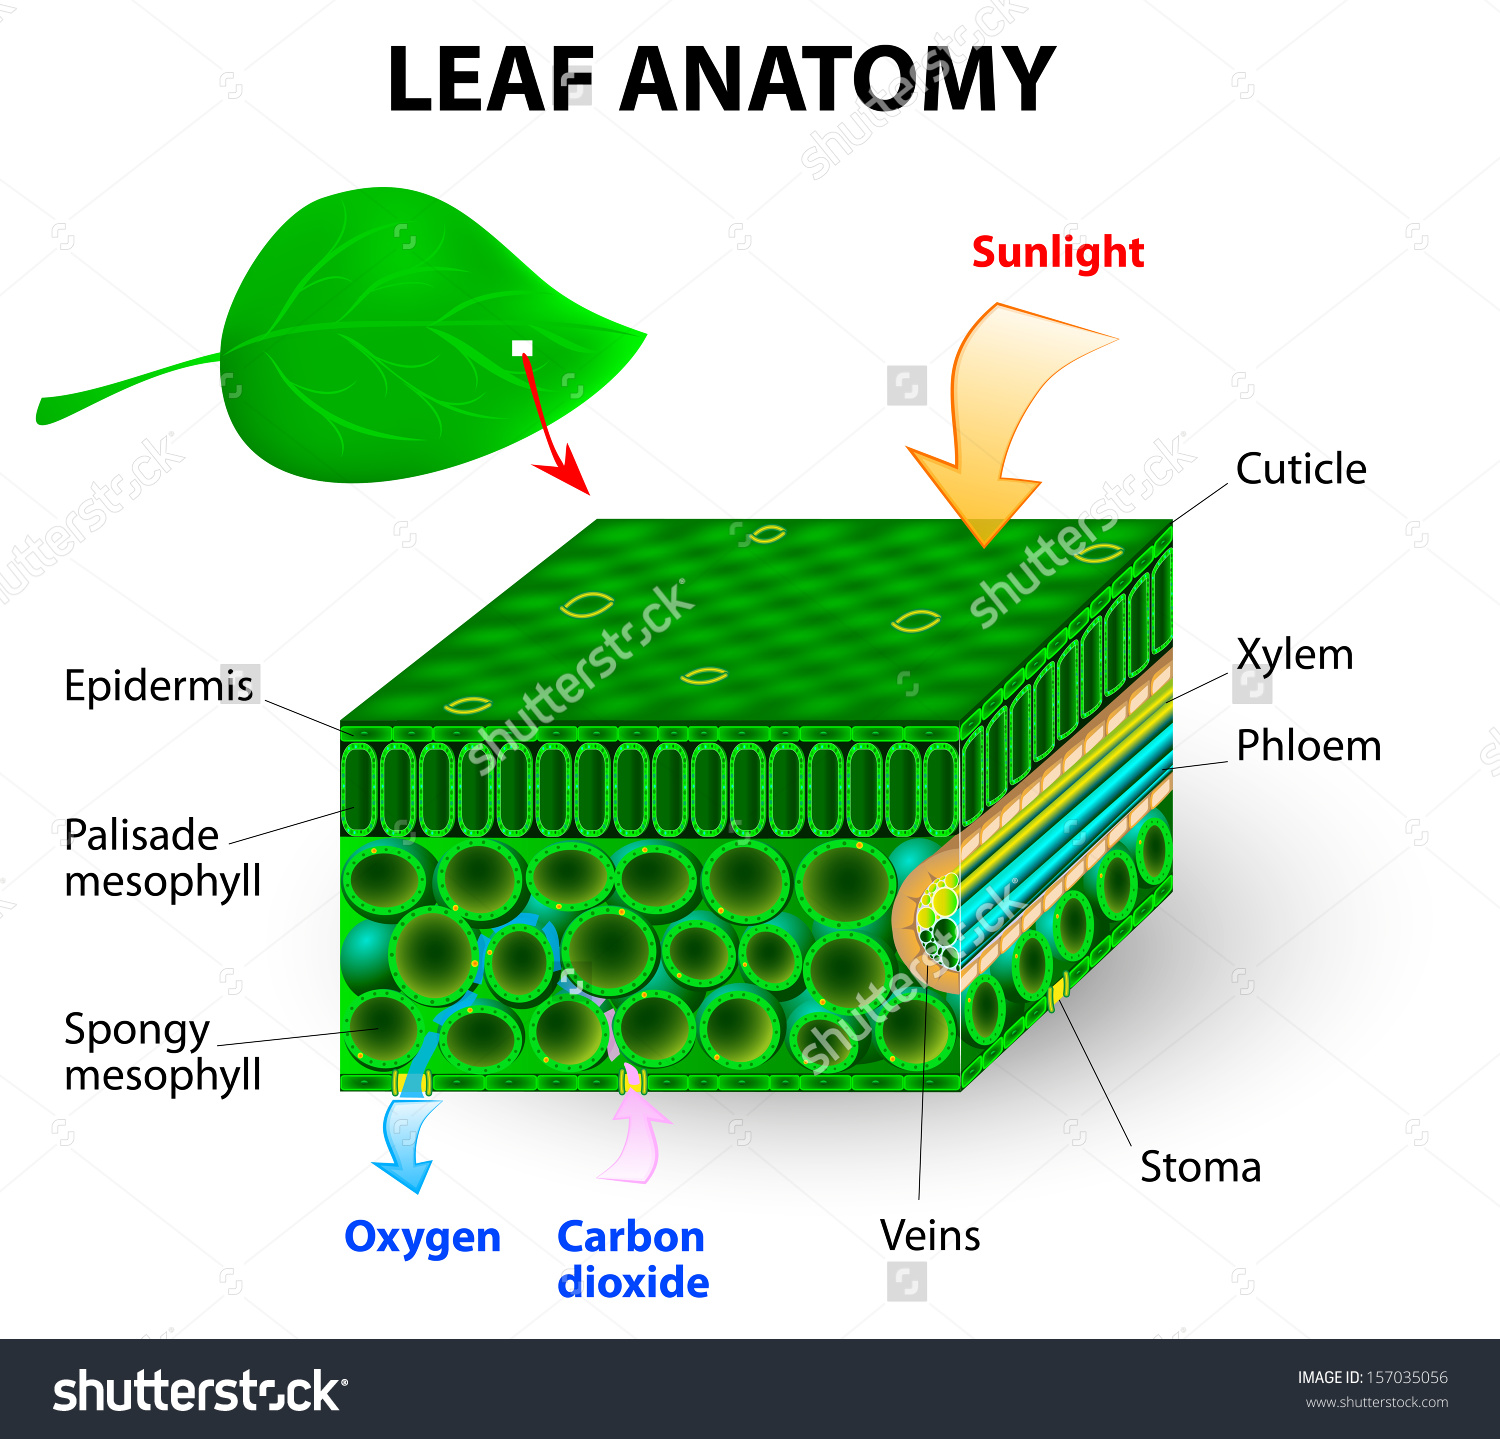 Leaf Anatomy Vector Diagram Photosynthesis Chlorophyll Stock.